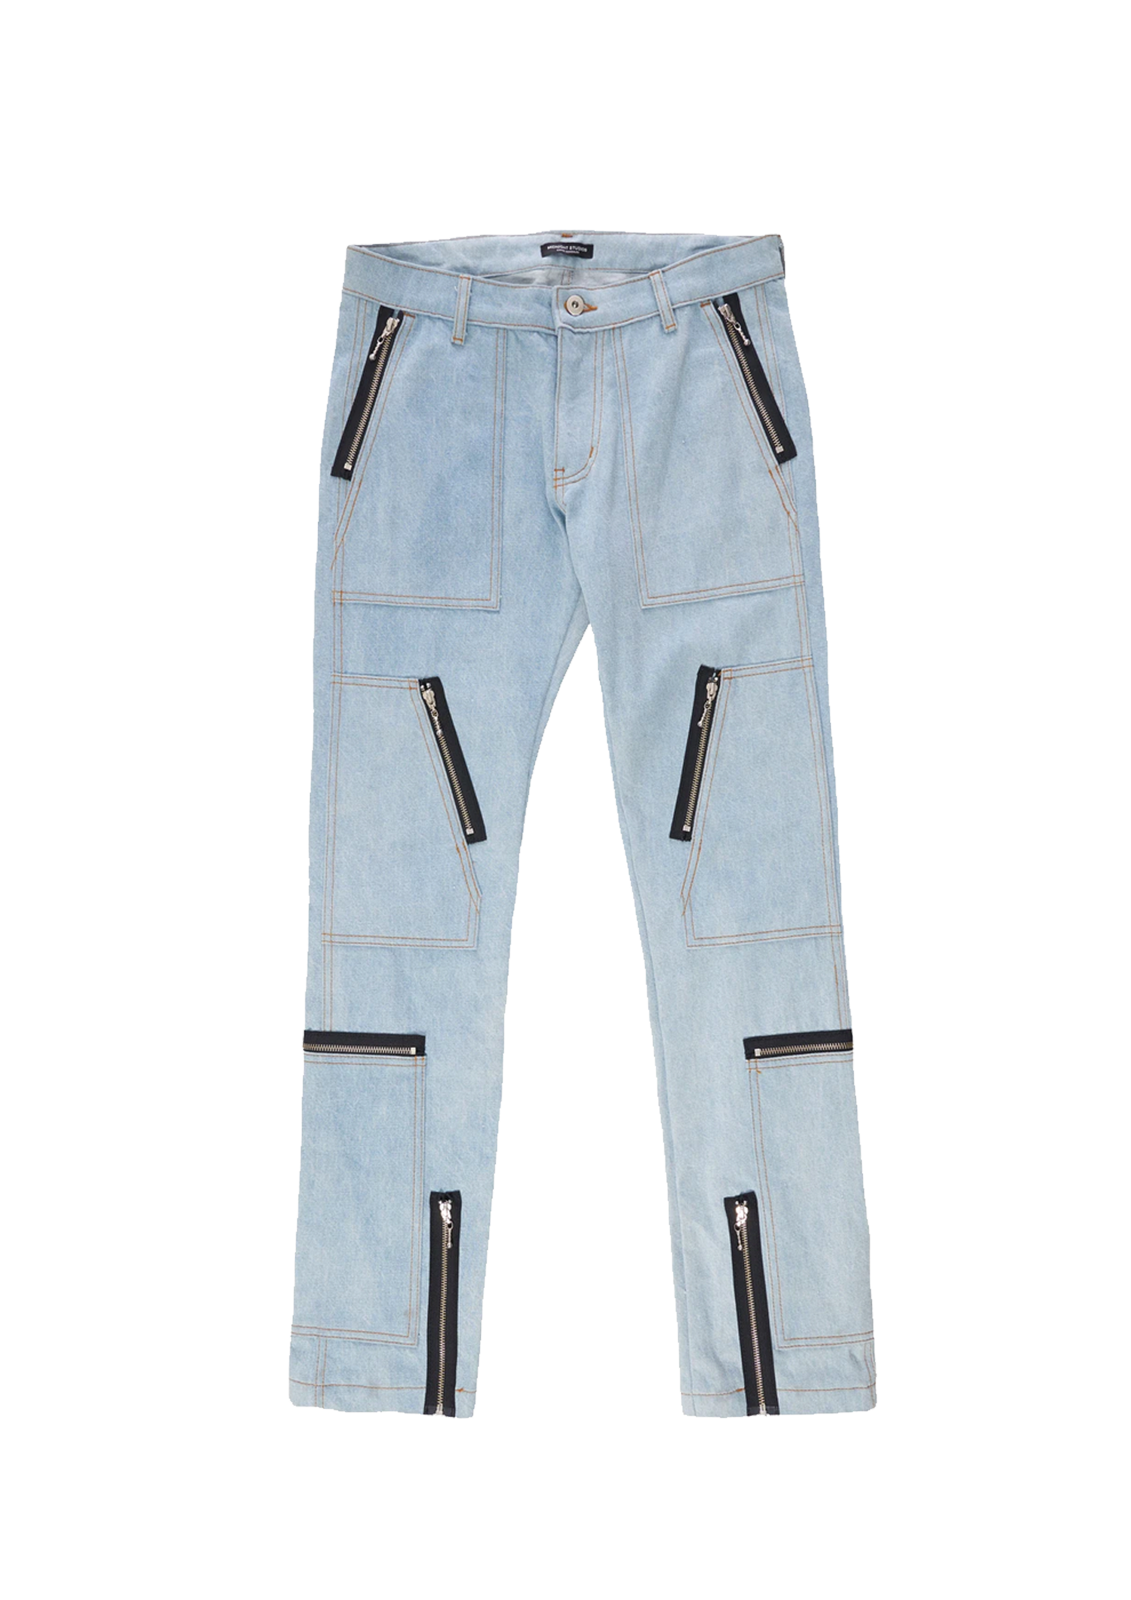 Denim Cargo Slim Fit Jeans - Blue